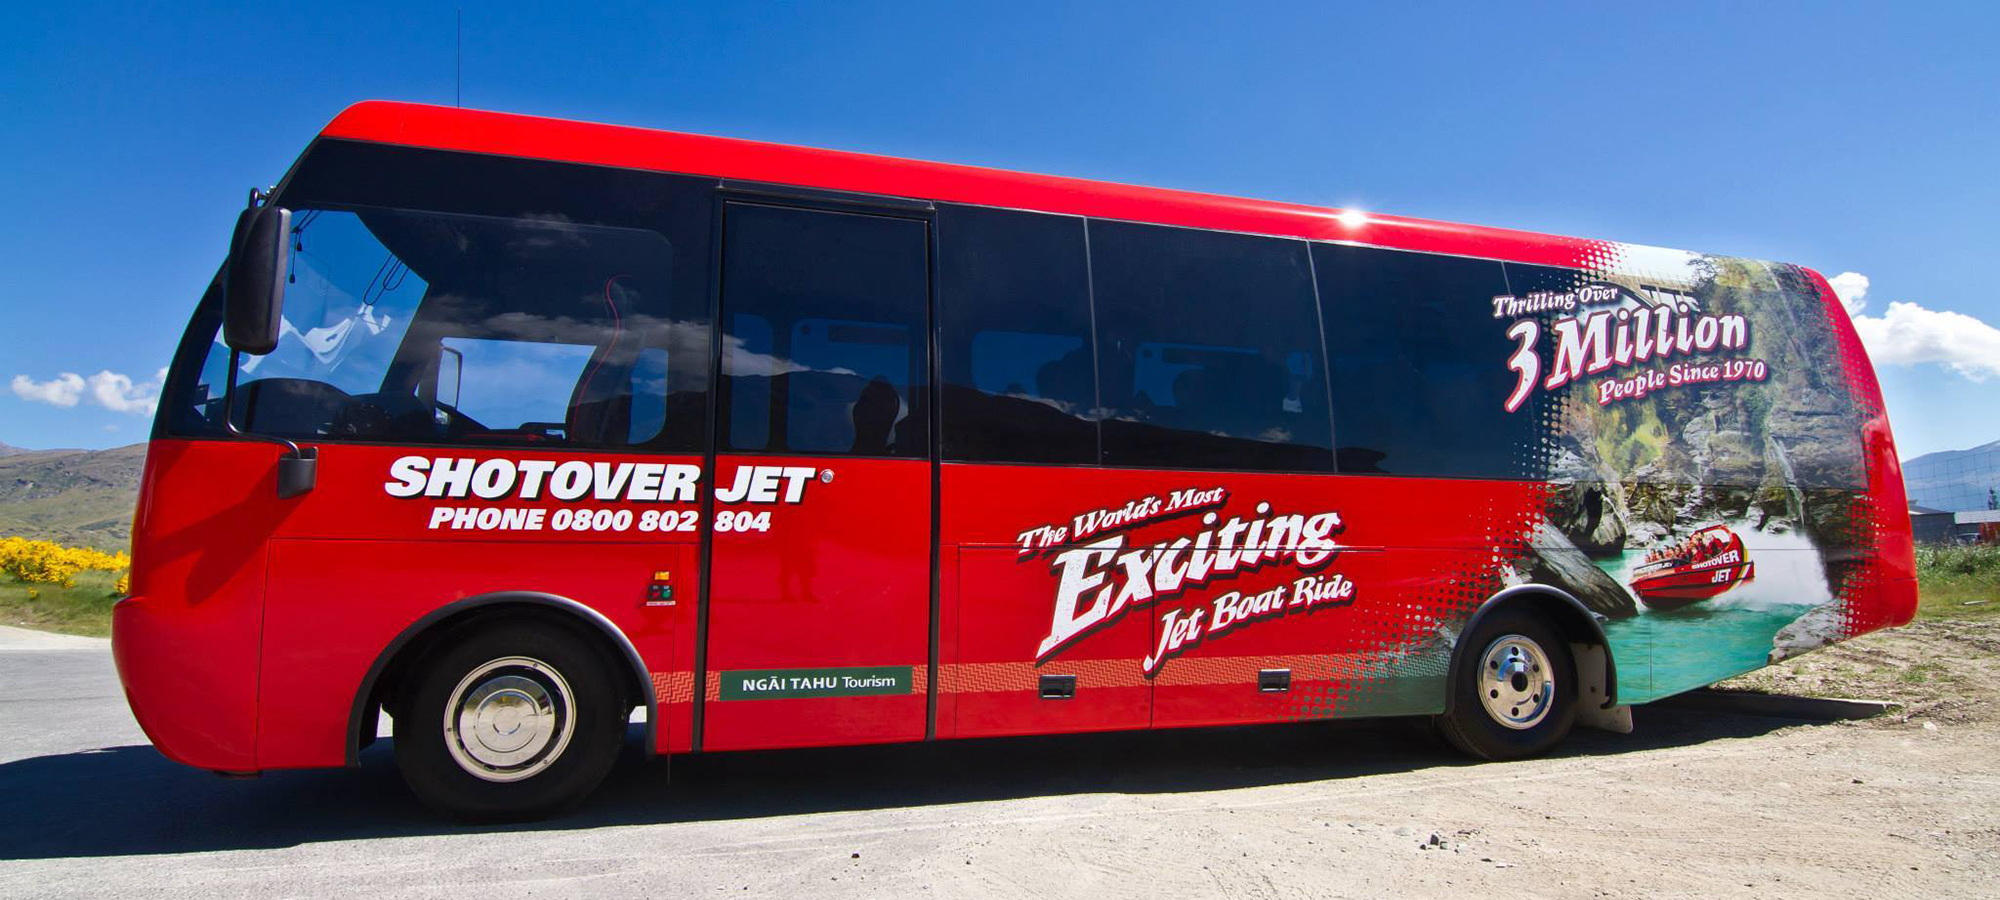 Shotover Jet Bus